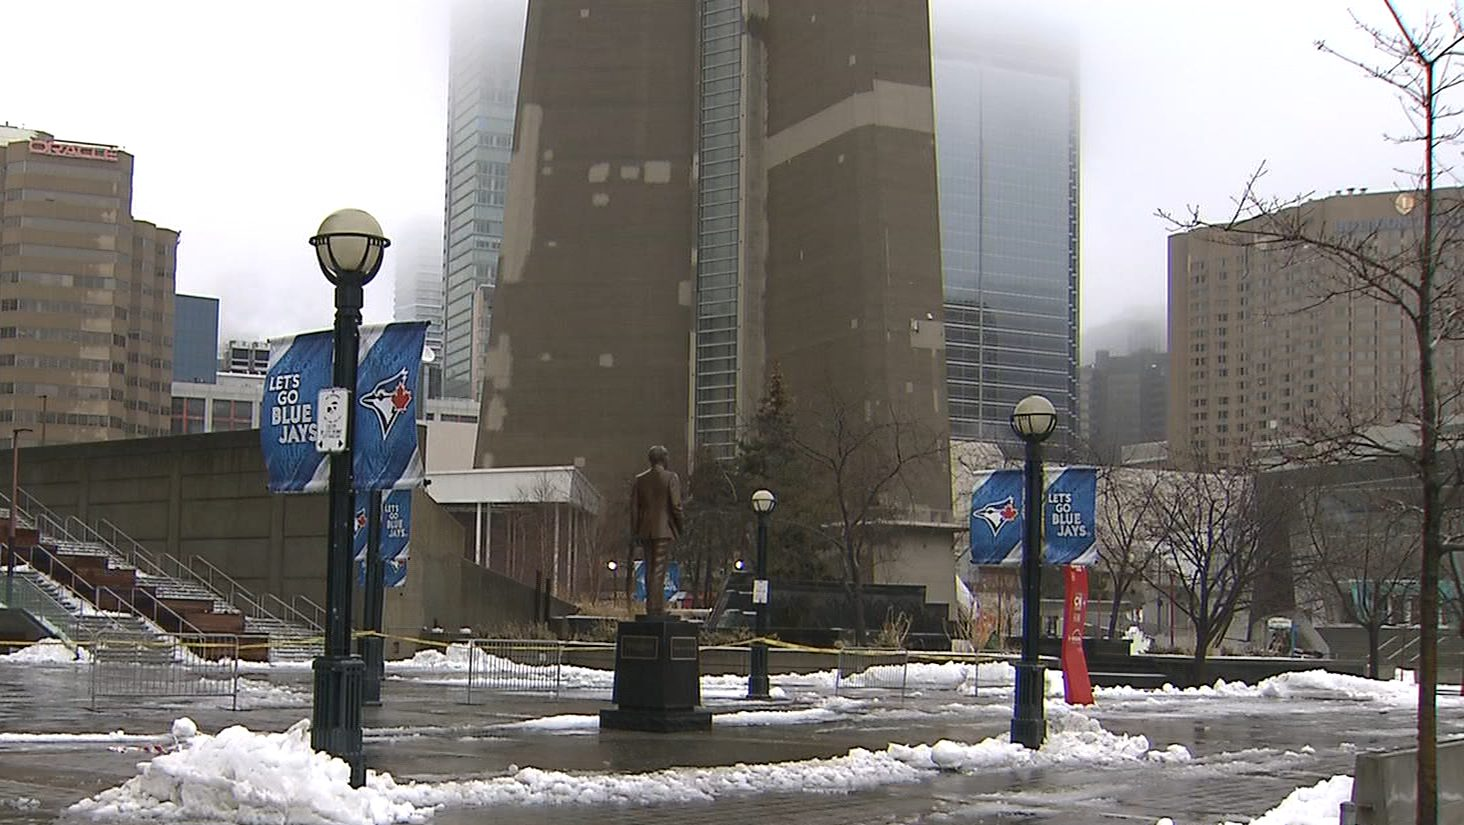 CN Tower closed, Rogers centre roof leaks due to falling ice